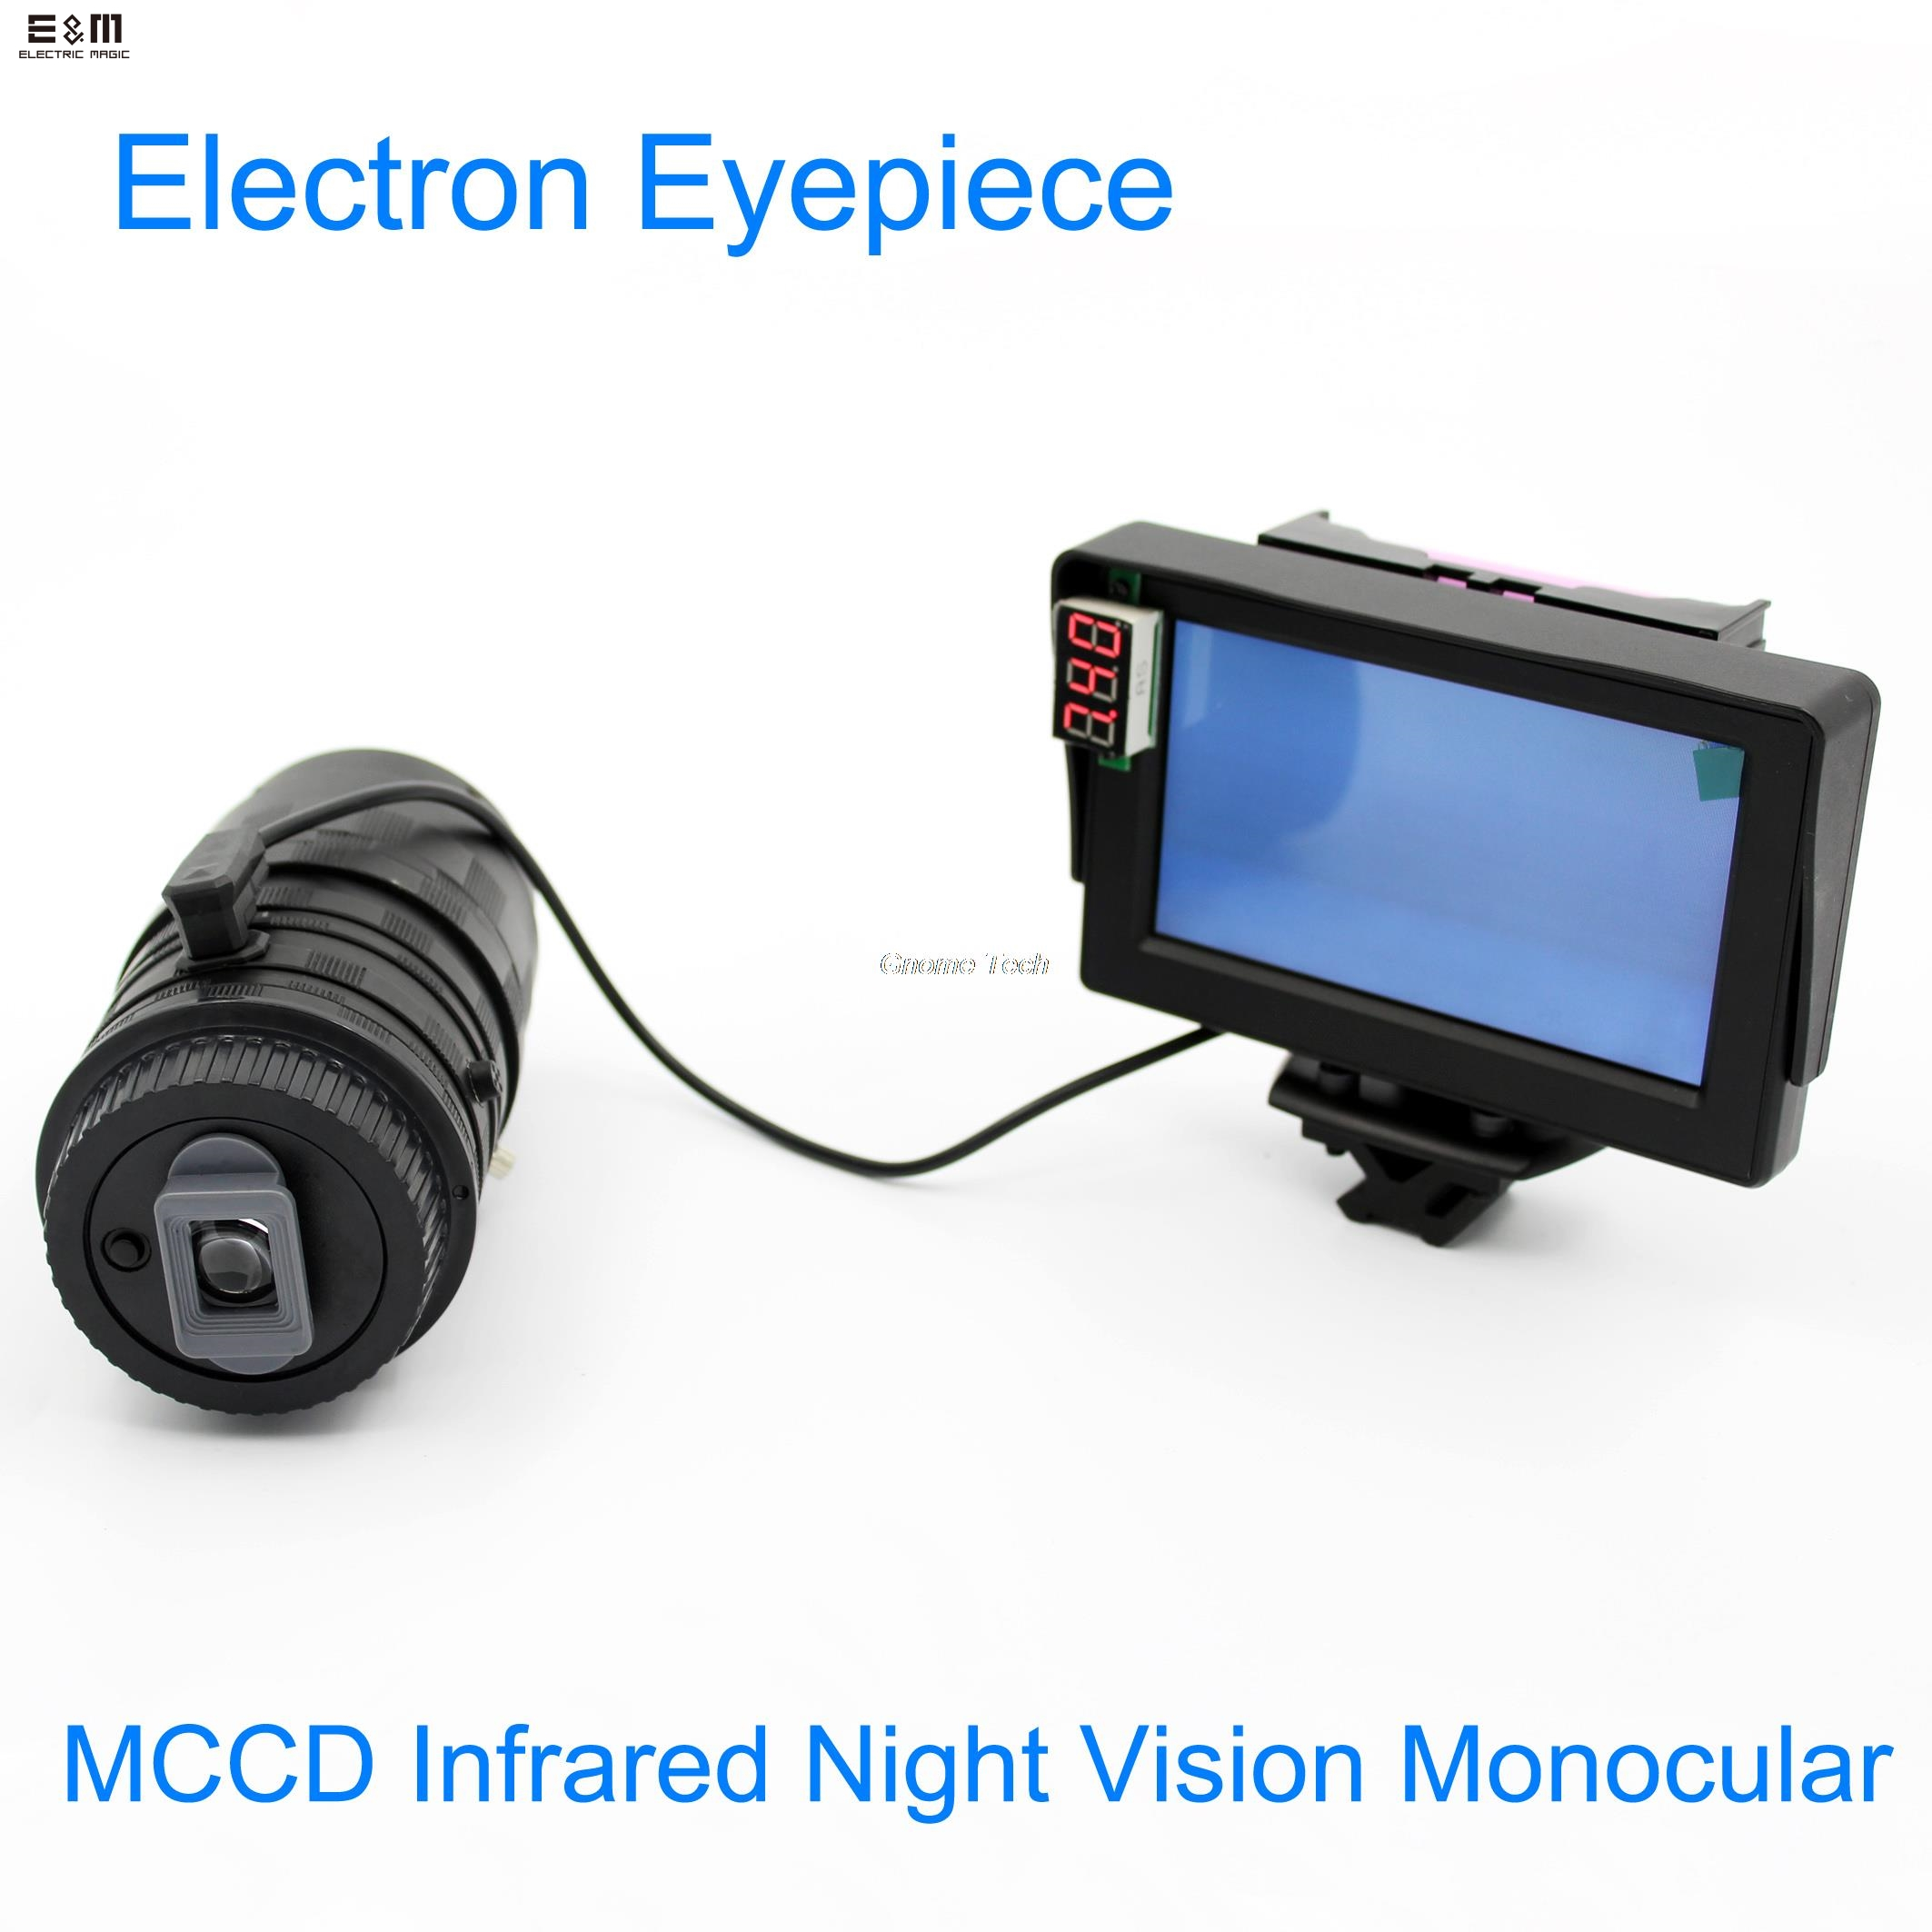 E&M Infrared Electron Eyepiece Night Vision Monocular MCCD Hunting With Display Goggles Scope Device Riflescope Customizable rg 55 1x24 head mounted night vision scope night vision googles night vision goggles infrared goggles